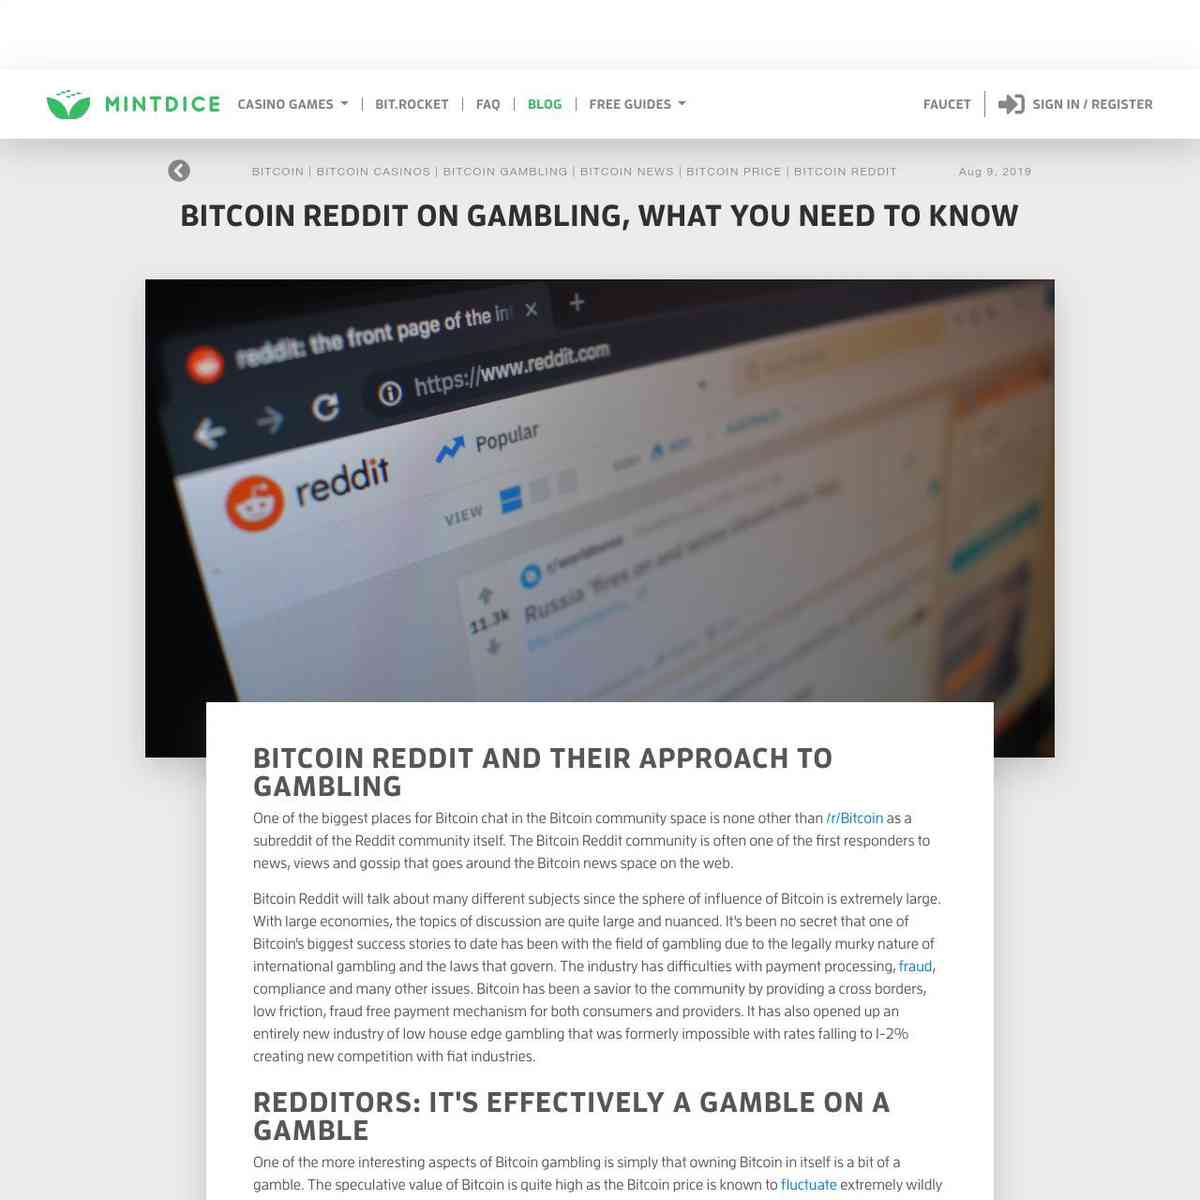 Bitcoin Reddit on Gambling, What You Need To Know